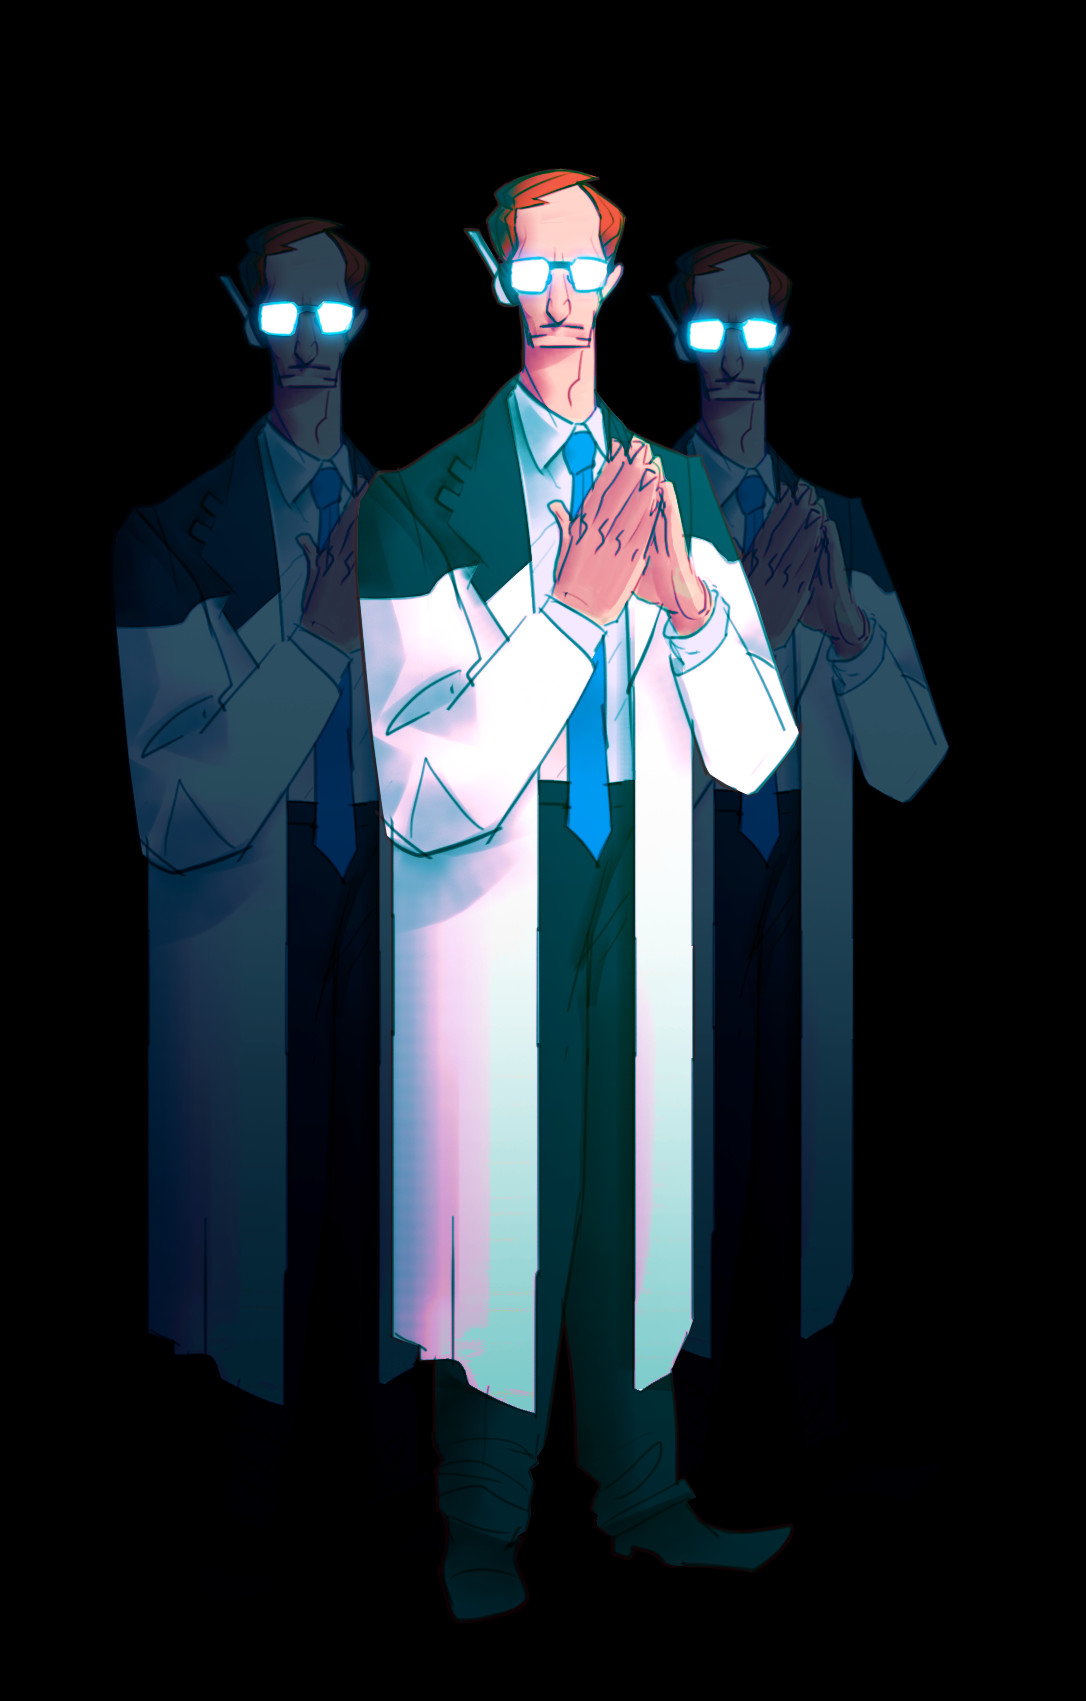 Alexis rives scientifique